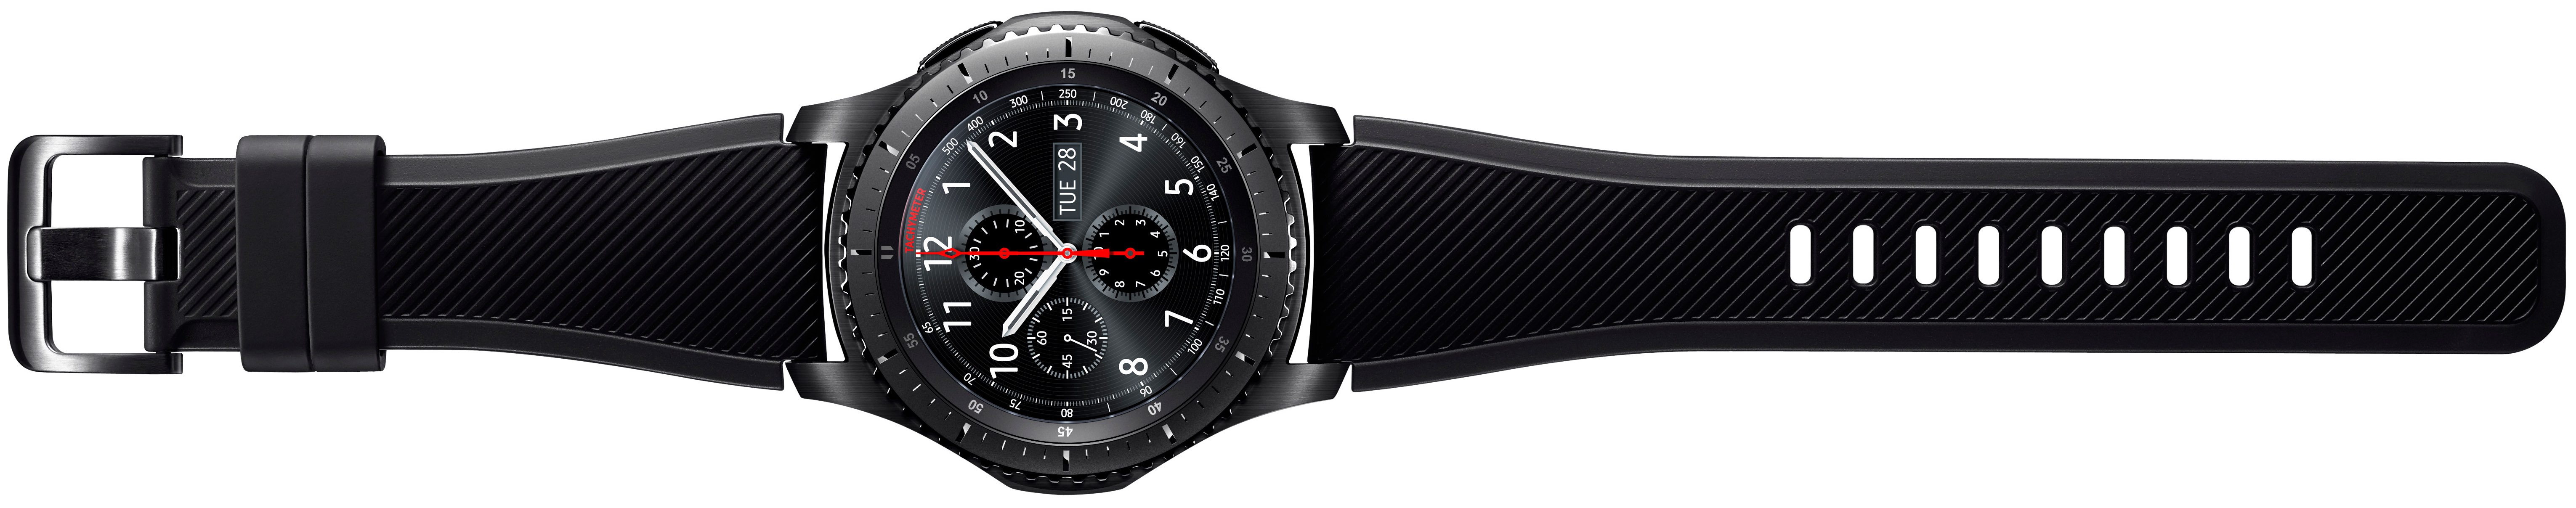 Samsung-Gear-S3-Frontier-image-005